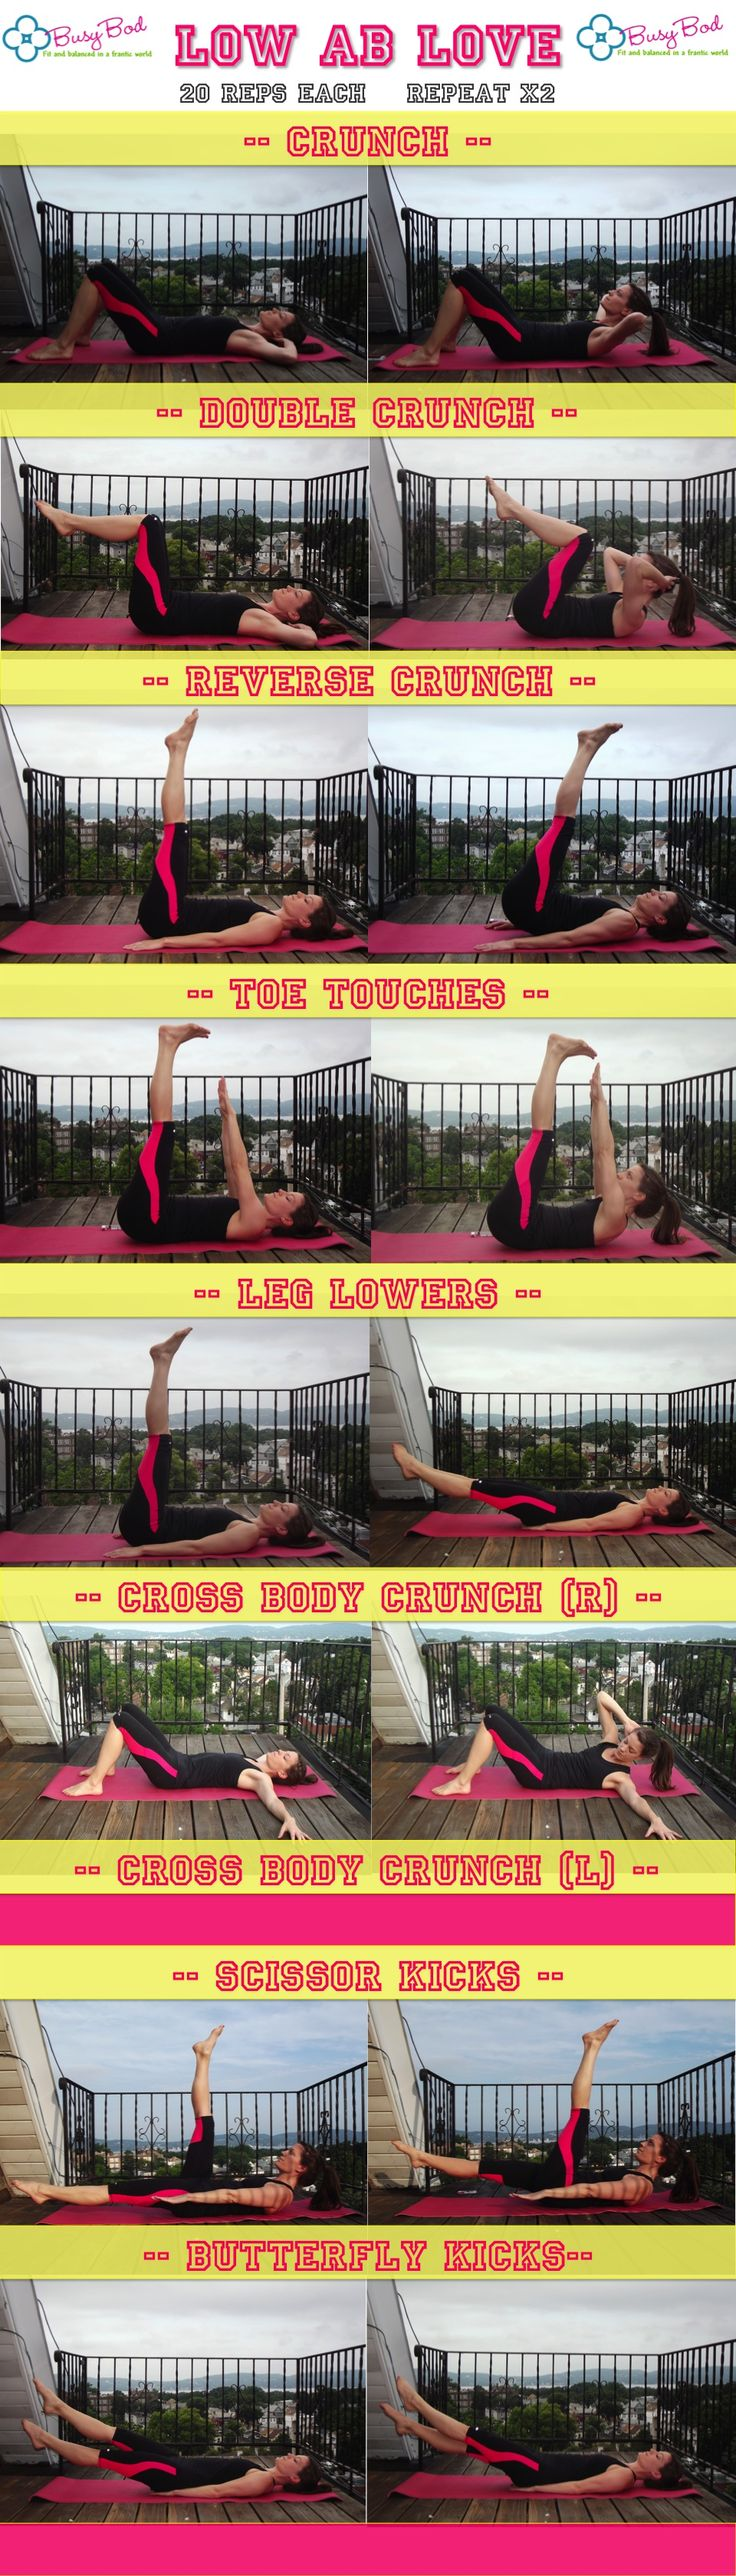 lower abs!